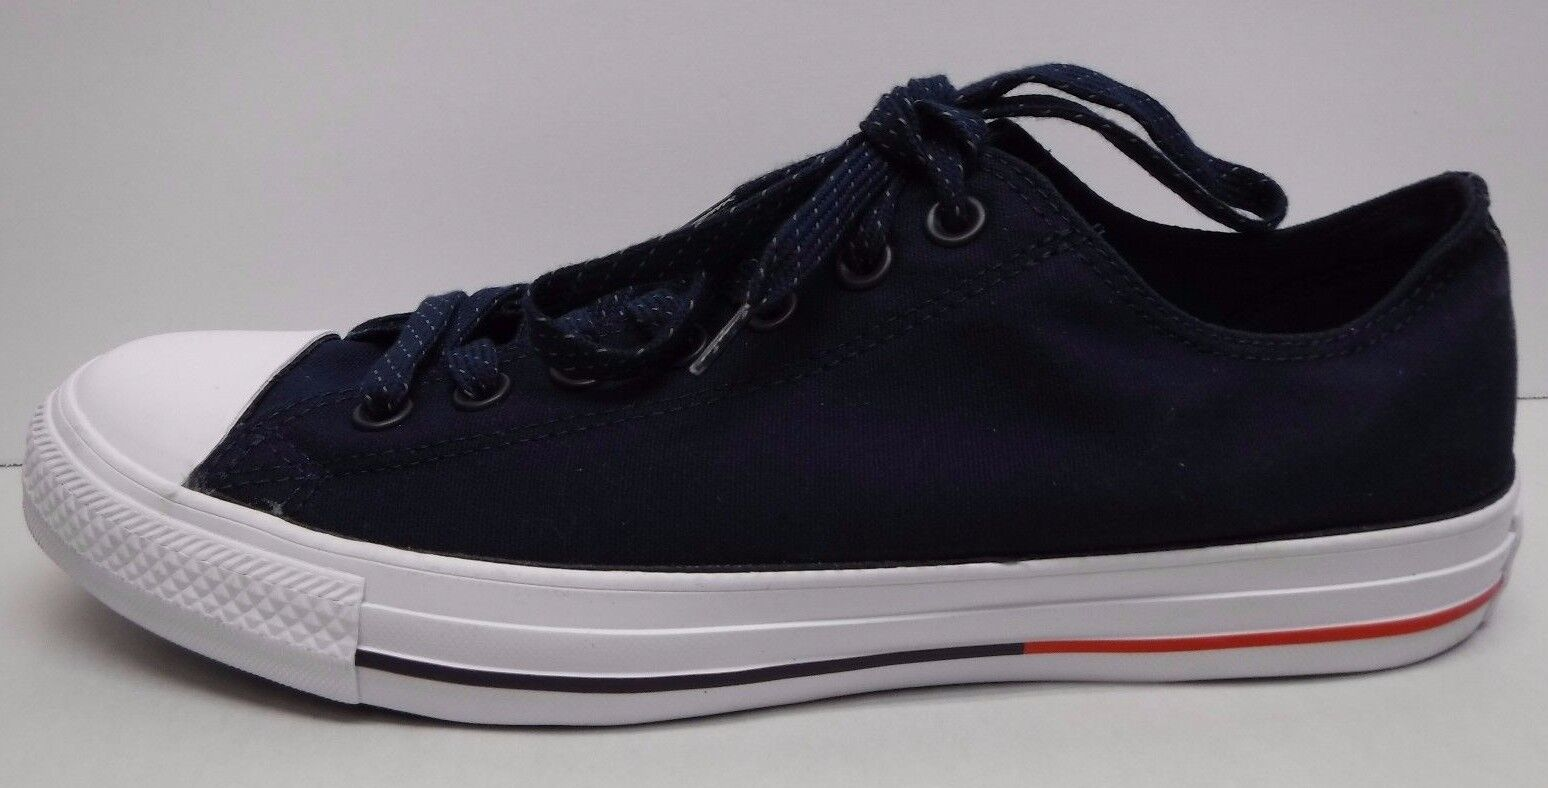 Converse Size 9.5 Blue Canvas Sneakers New New New Mens Shoes 1c7644